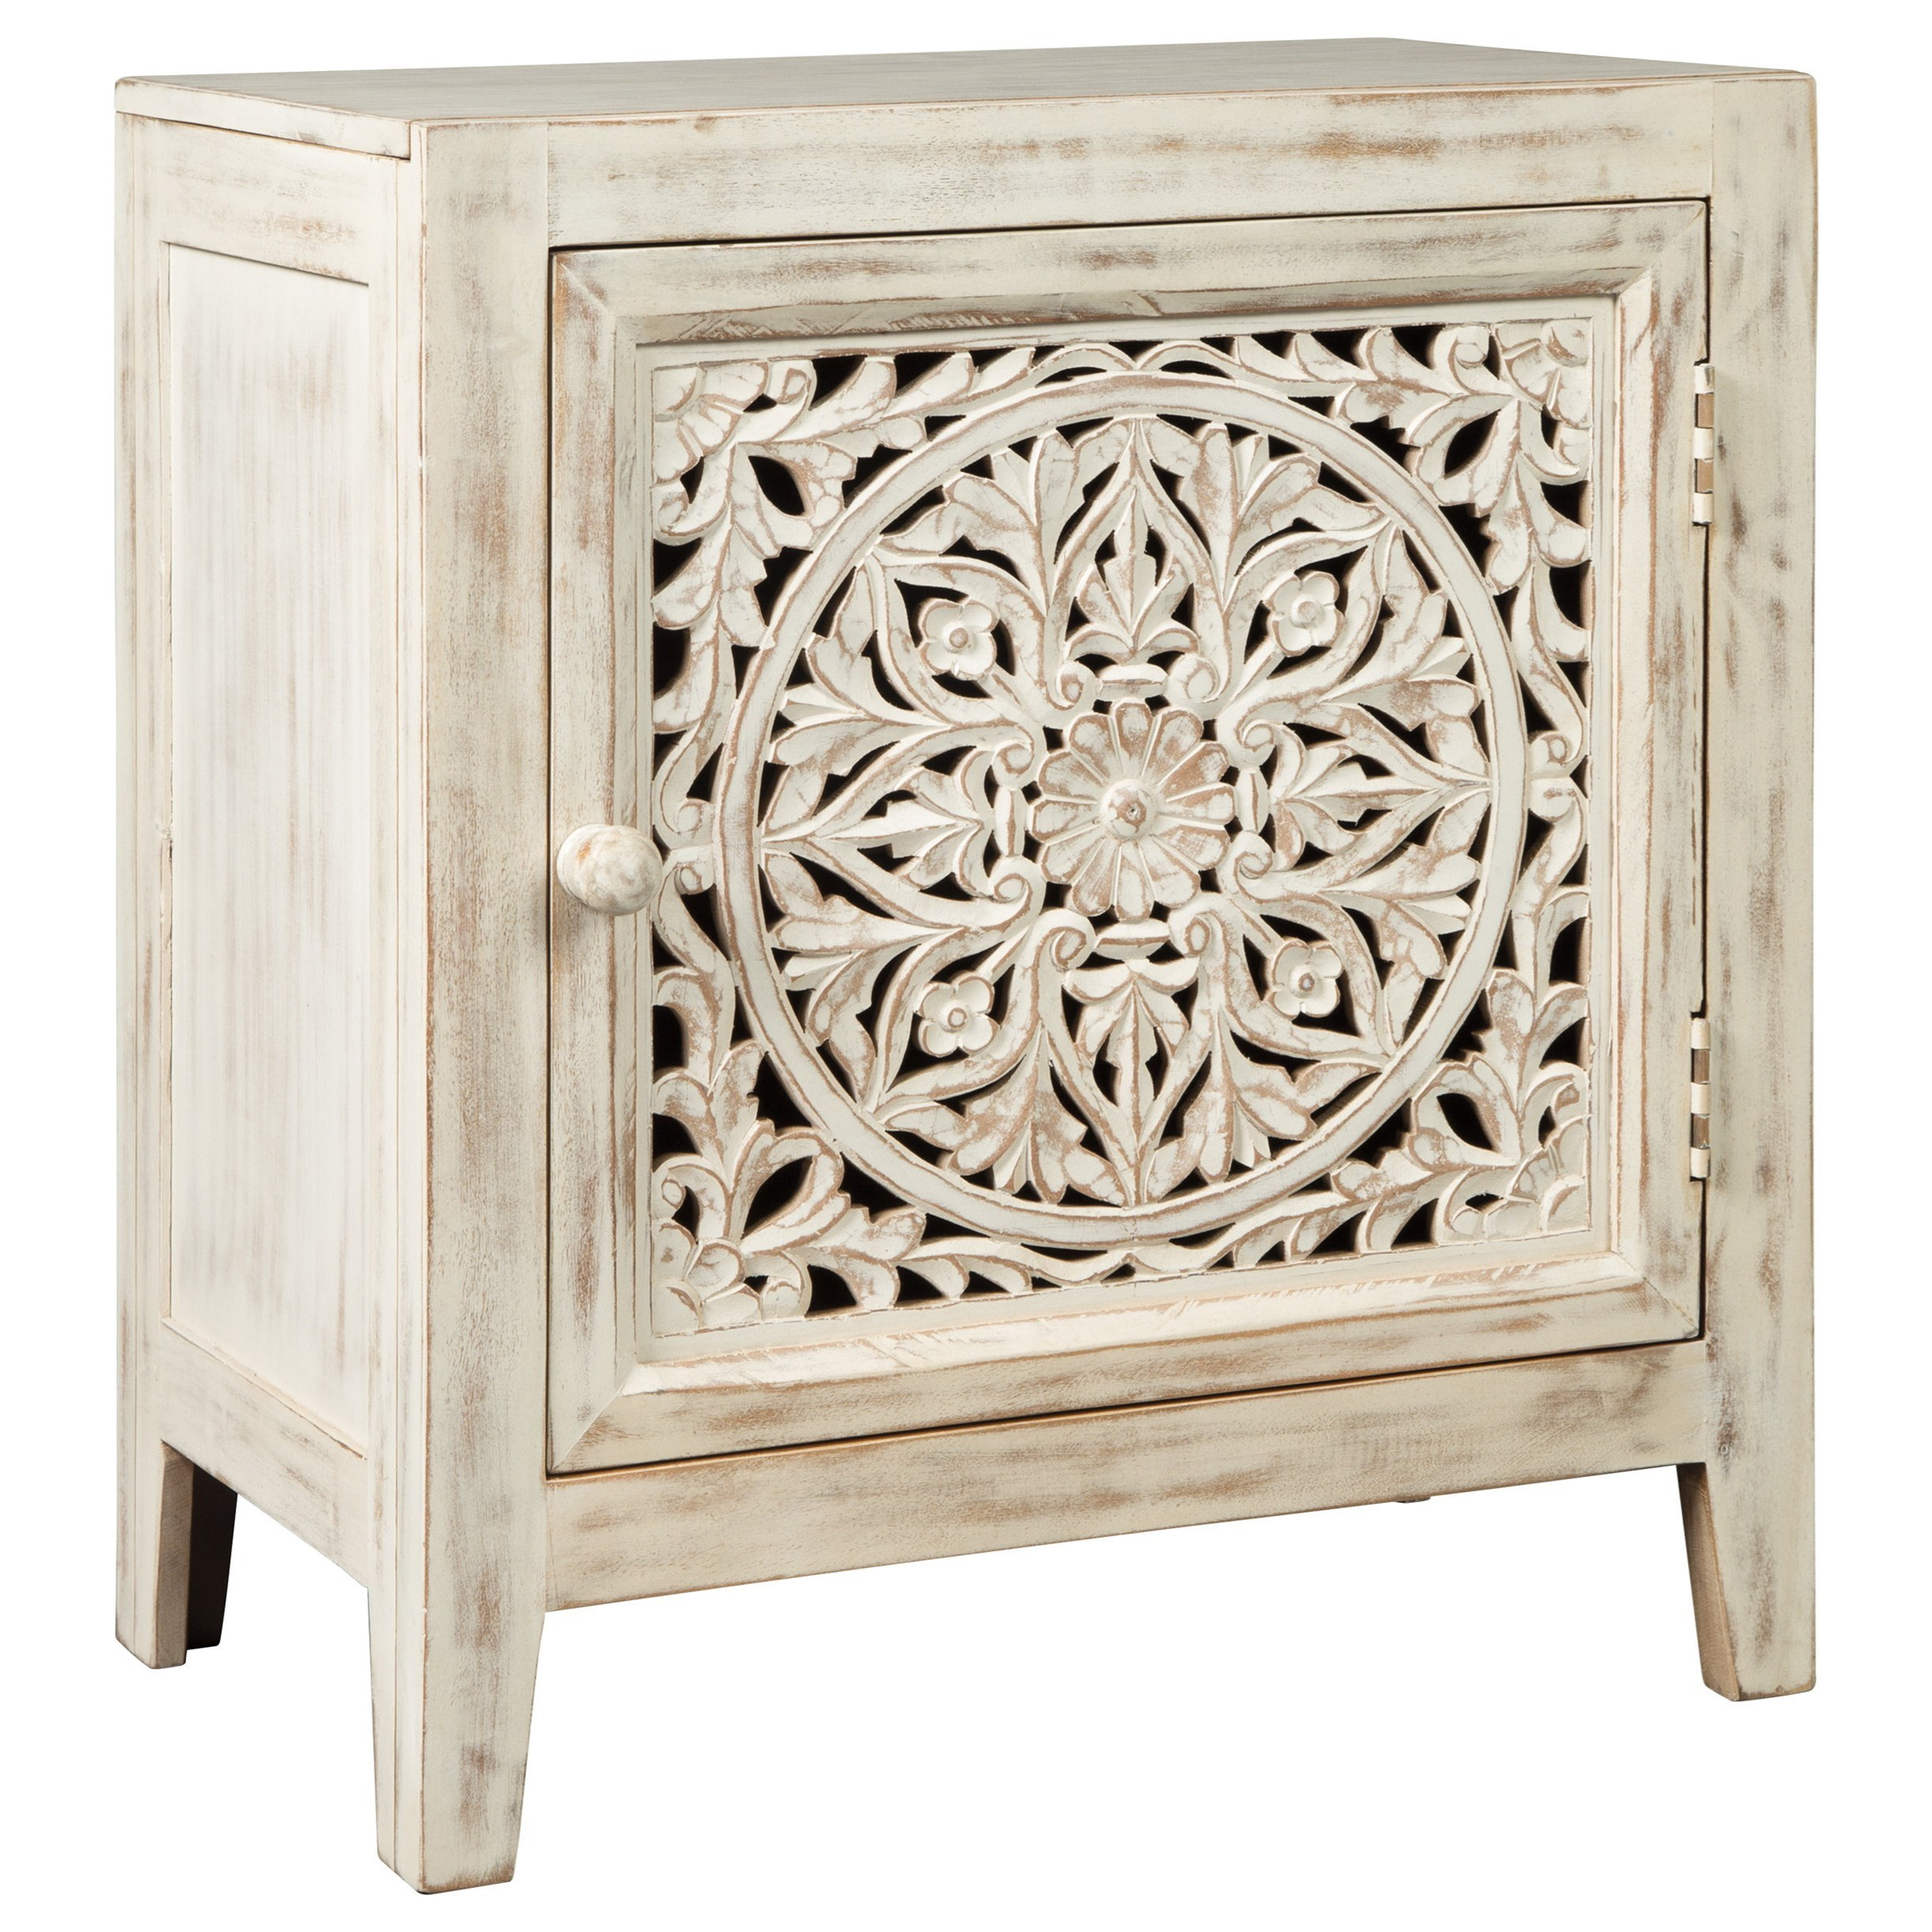 Fossil Ridge Accent Cabinet by Signature Design by Ashley at Sparks HomeStore